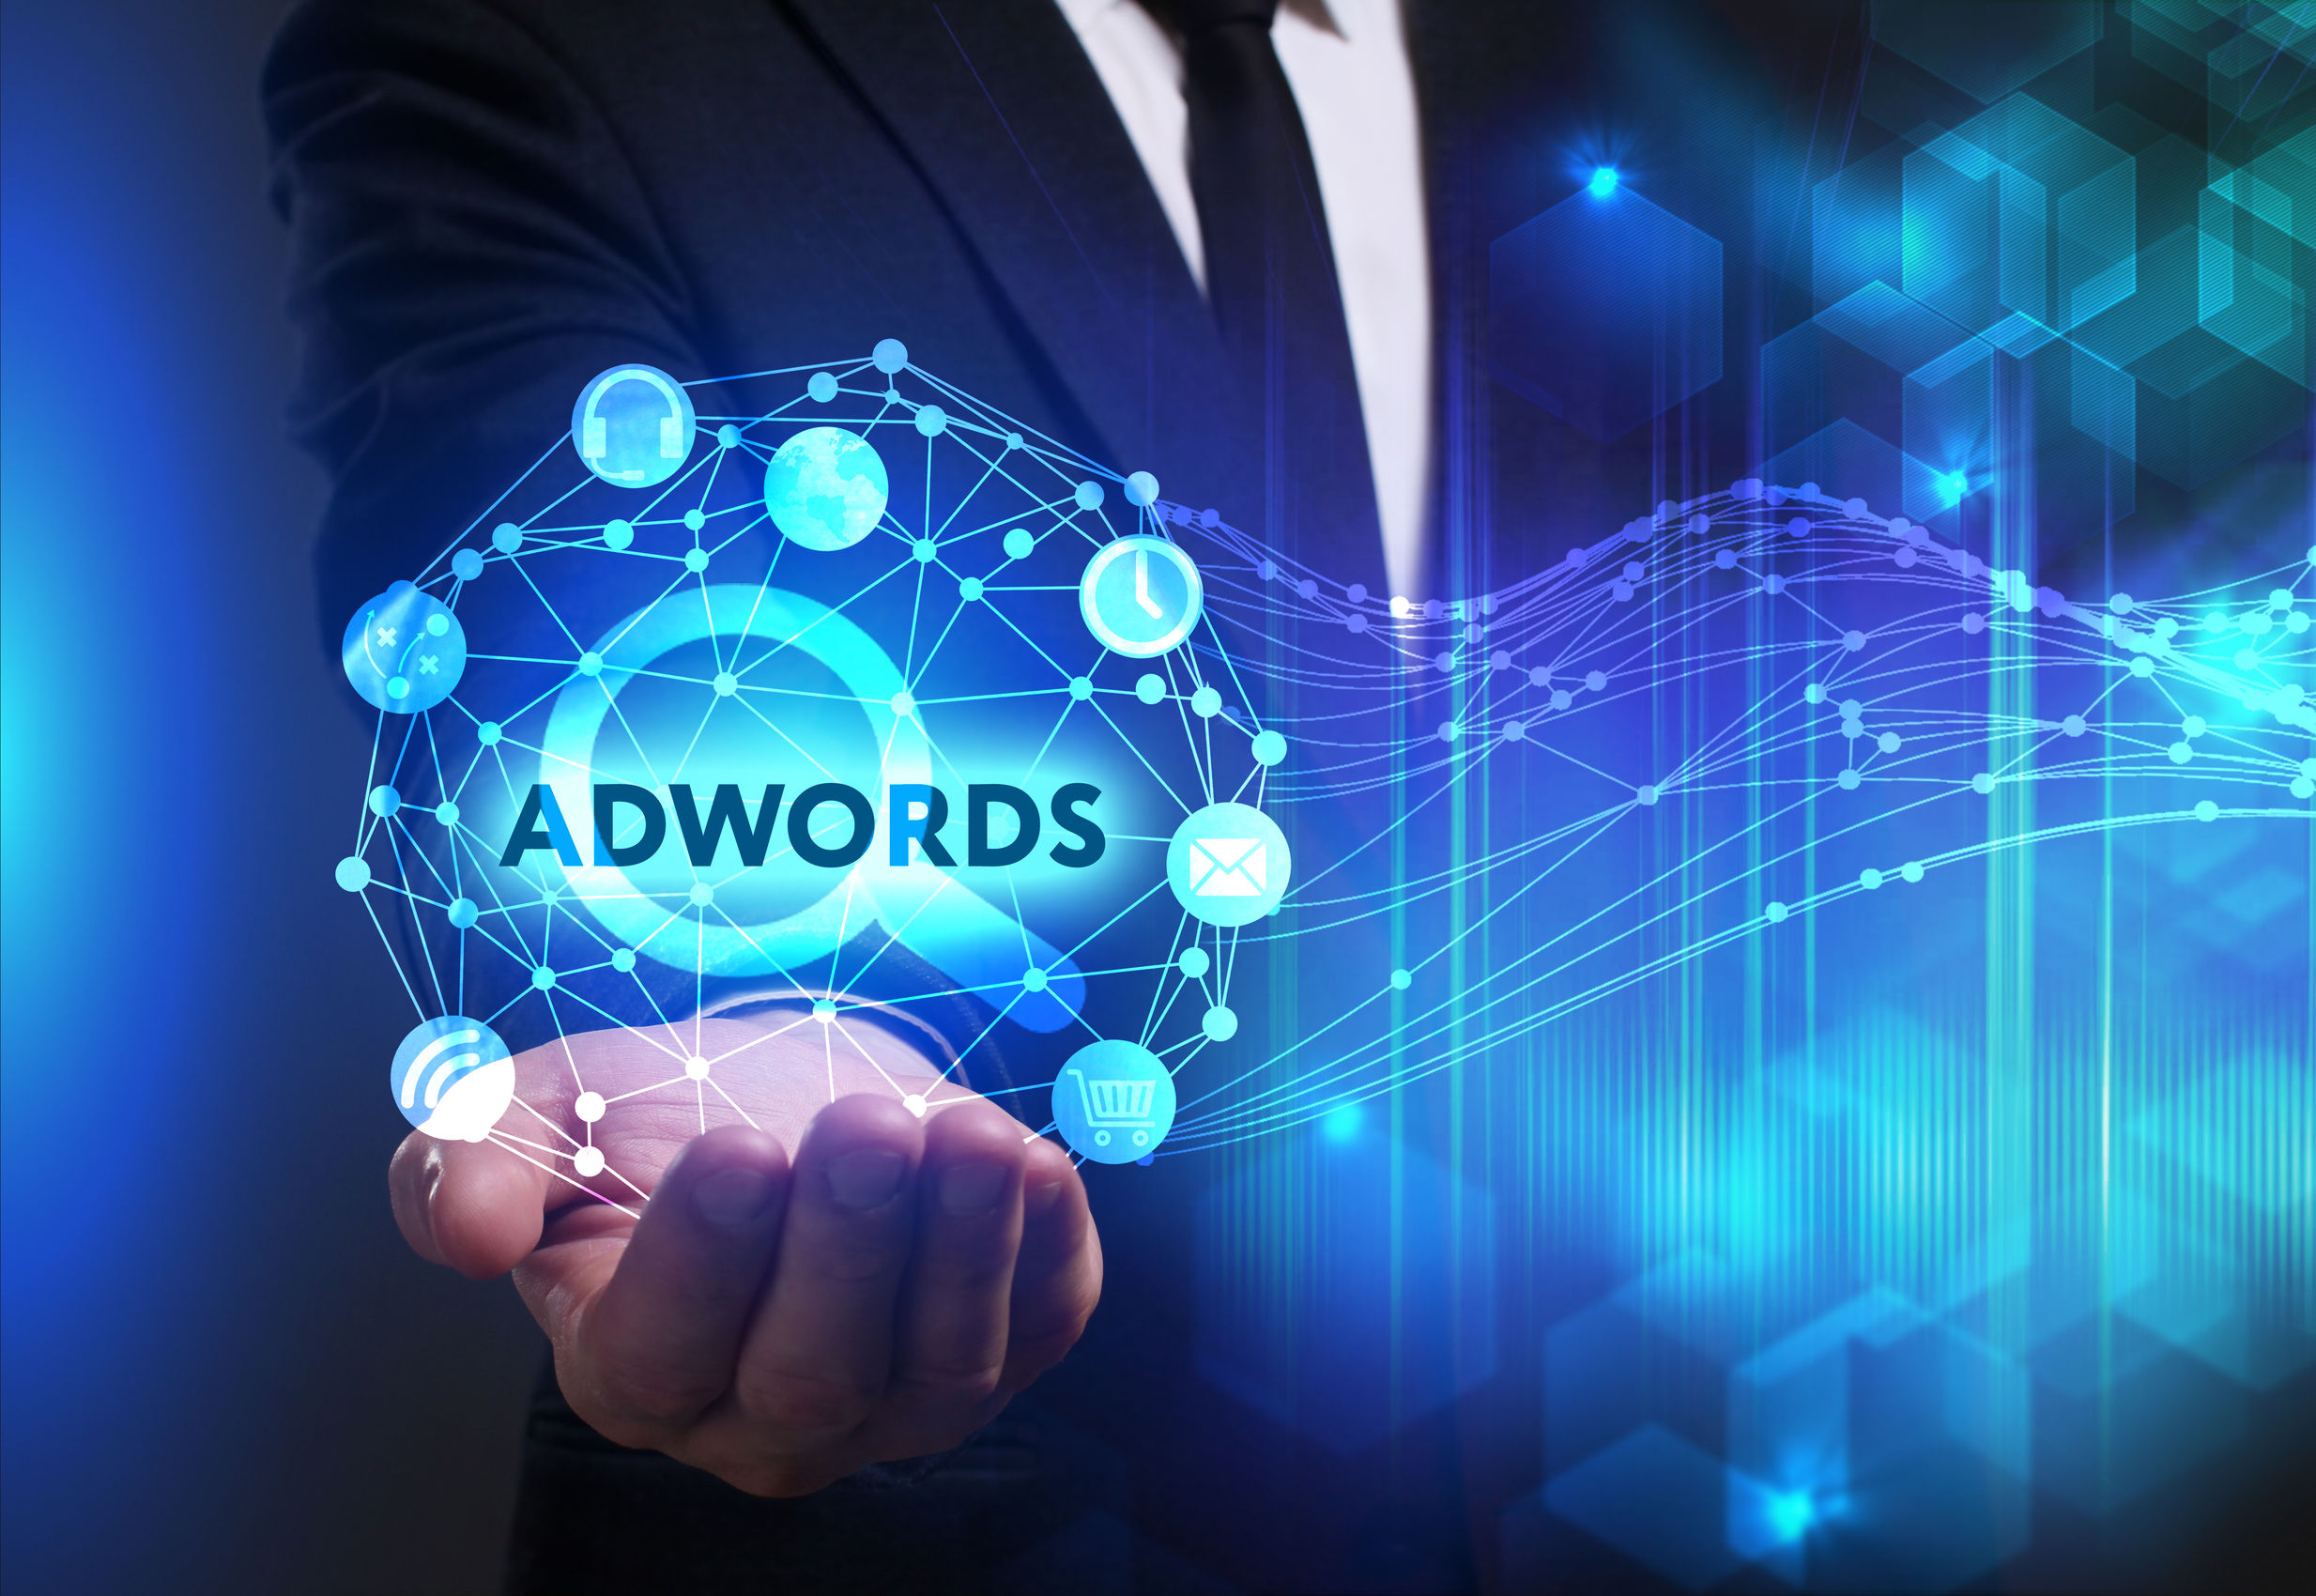 Digital Adwords in der Hand